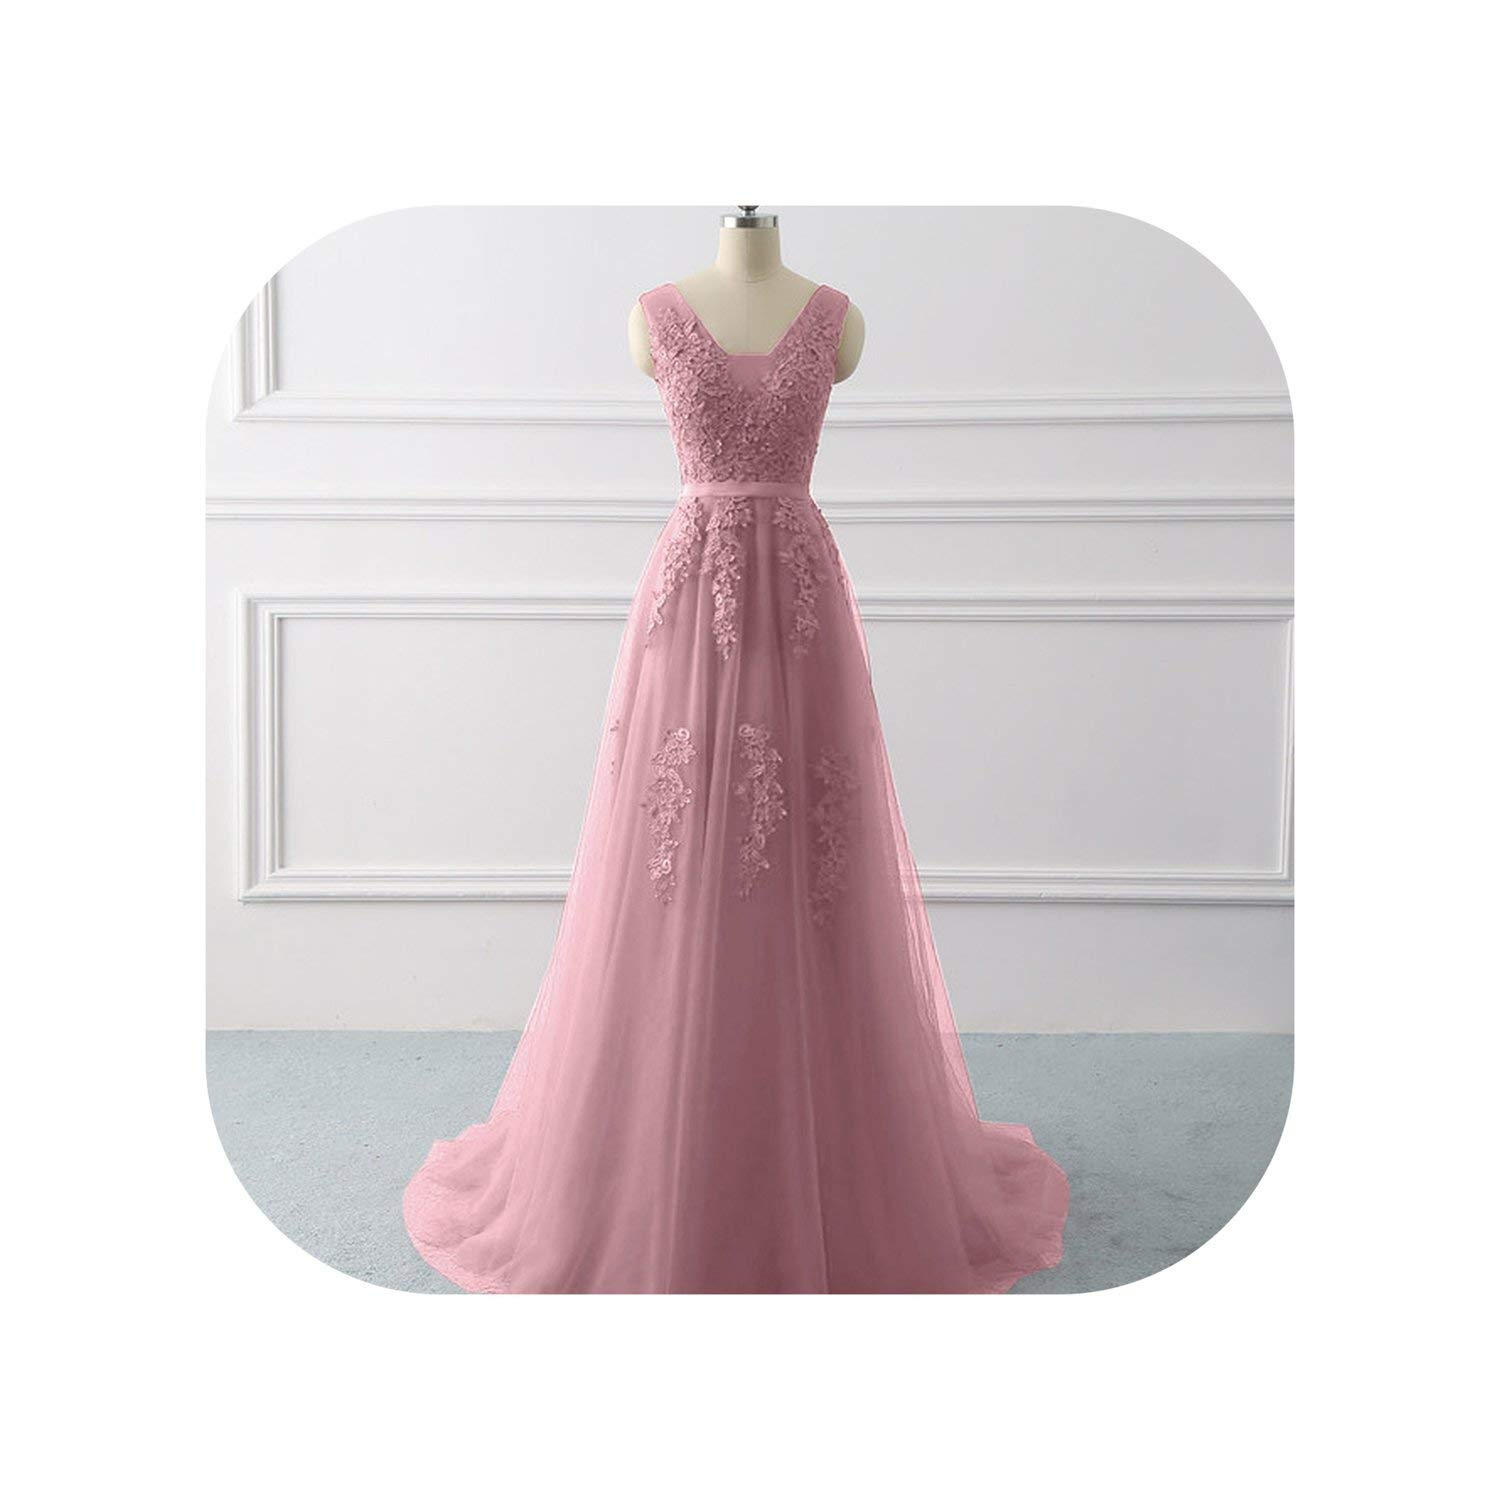 Dark Pink Royal bluee Evening Dress Formal Party Dresses Appliques lace Prom Gown Dress Bridal Vestido